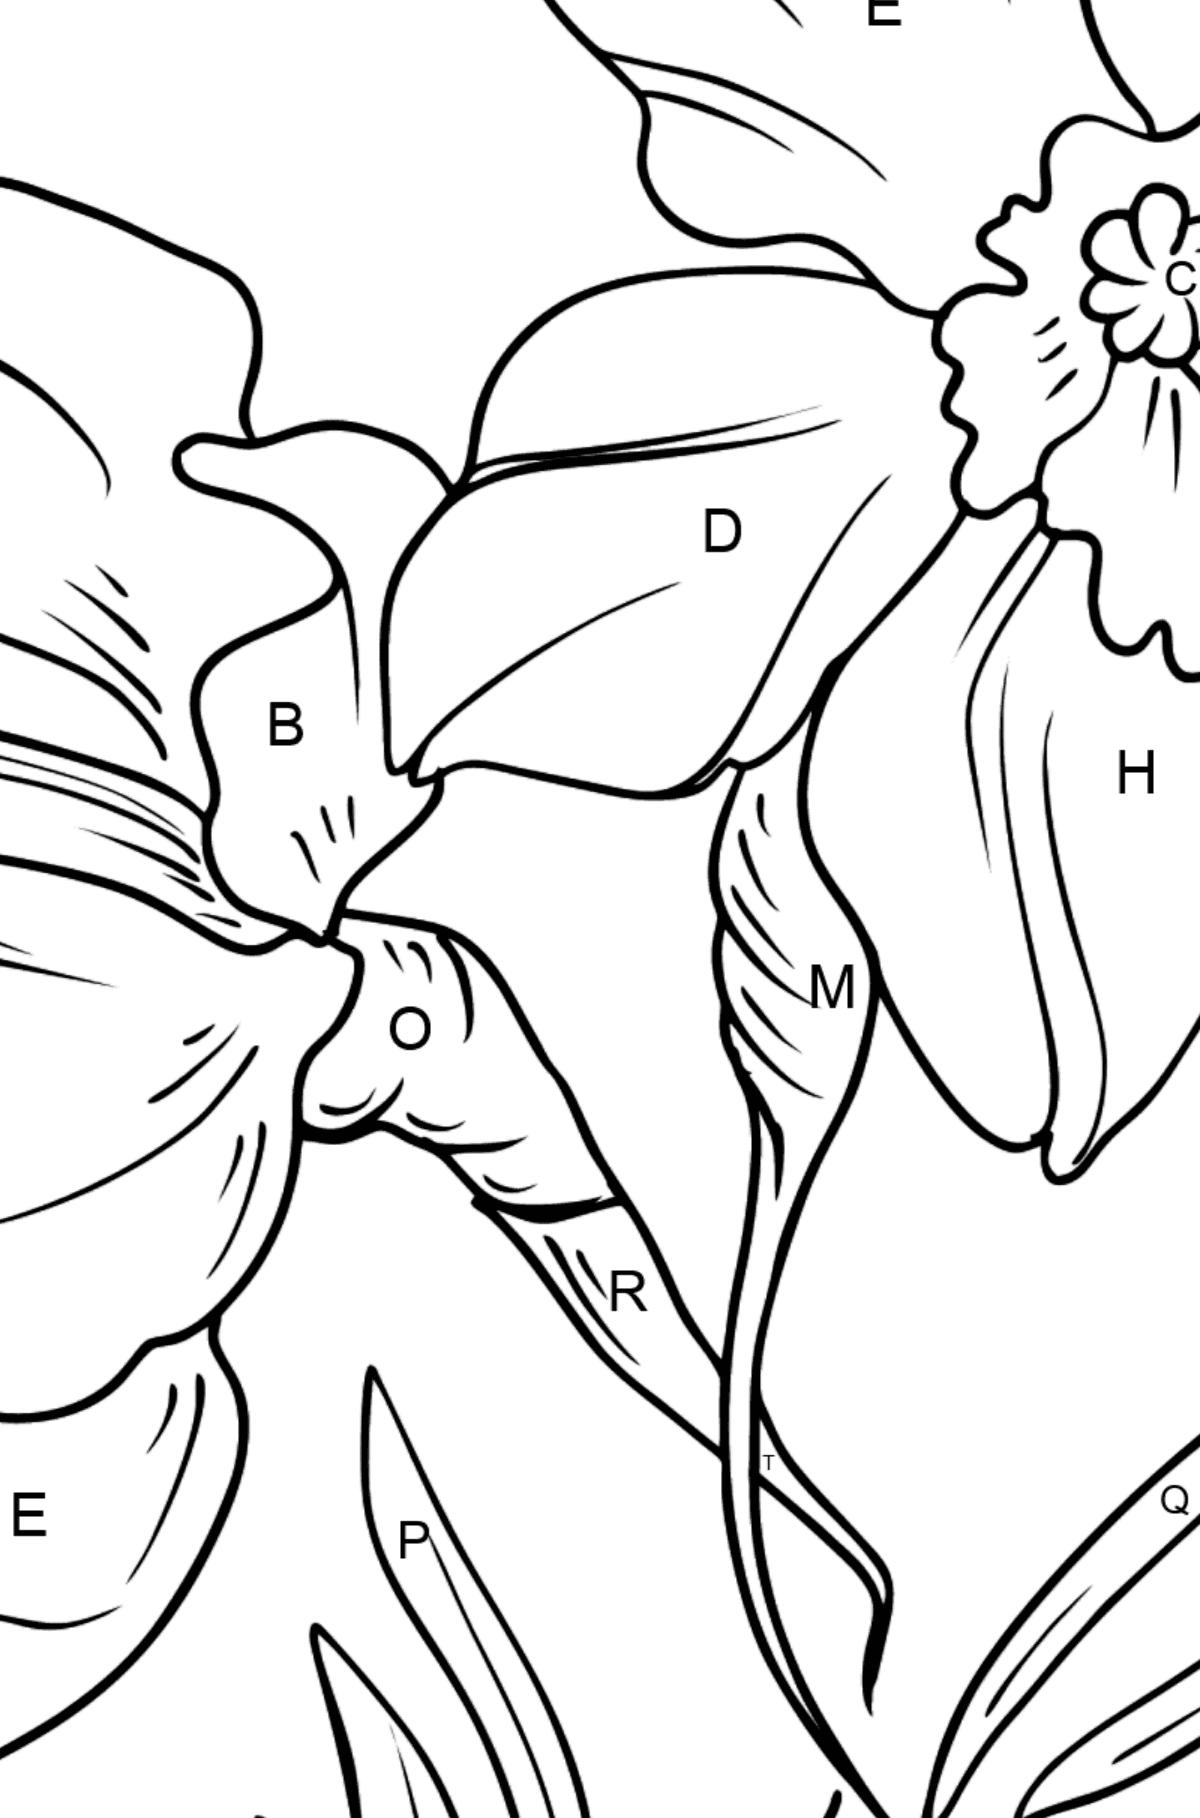 Flower Coloring Page - Daffodils - Coloring by Letters for Kids